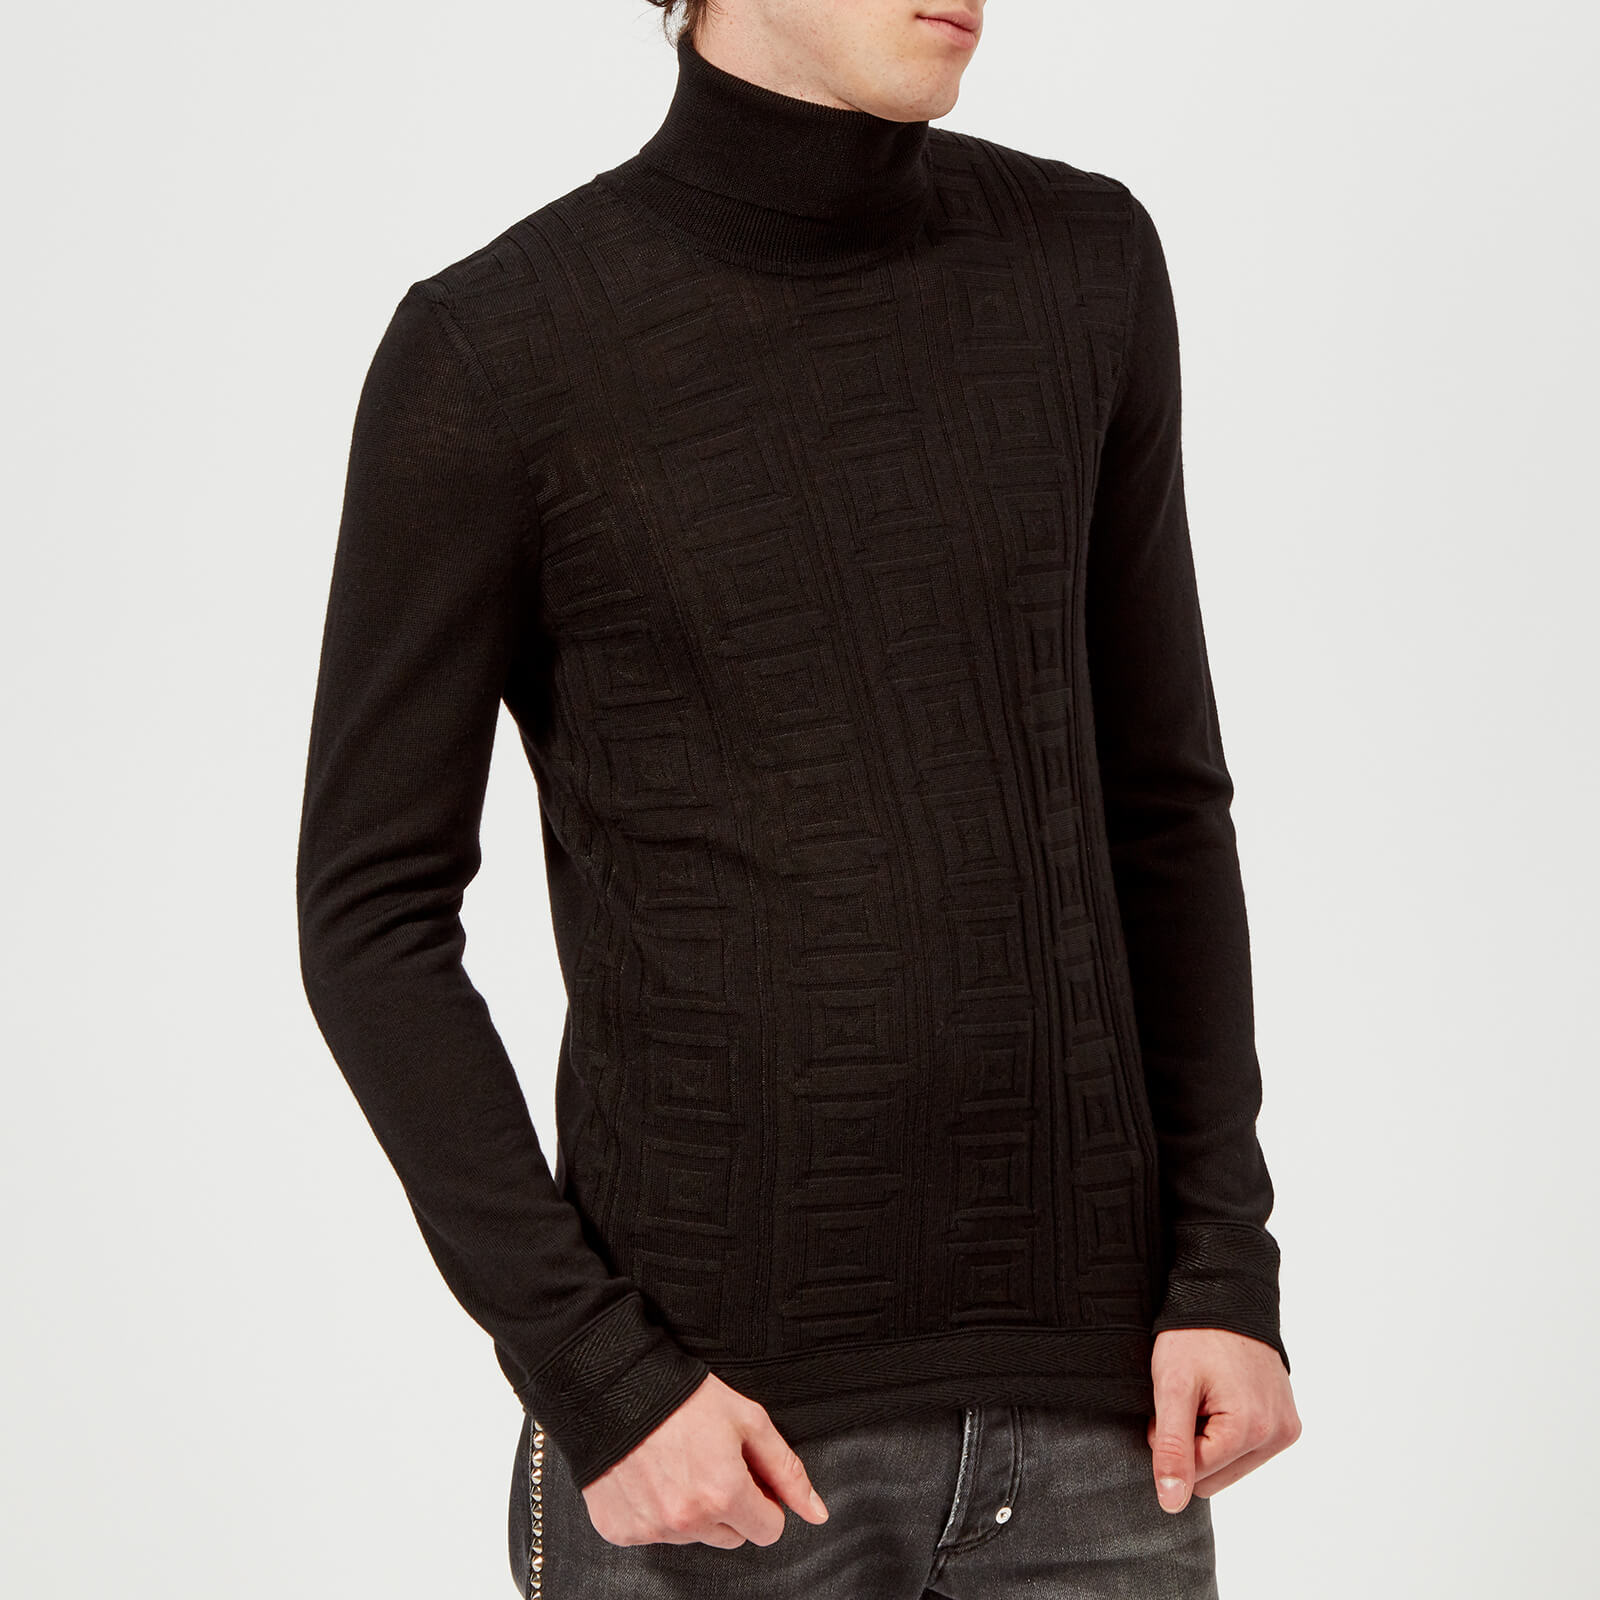 a9709a902a1 Versace Collection Men's Roll Neck Knit Jumper - Nero